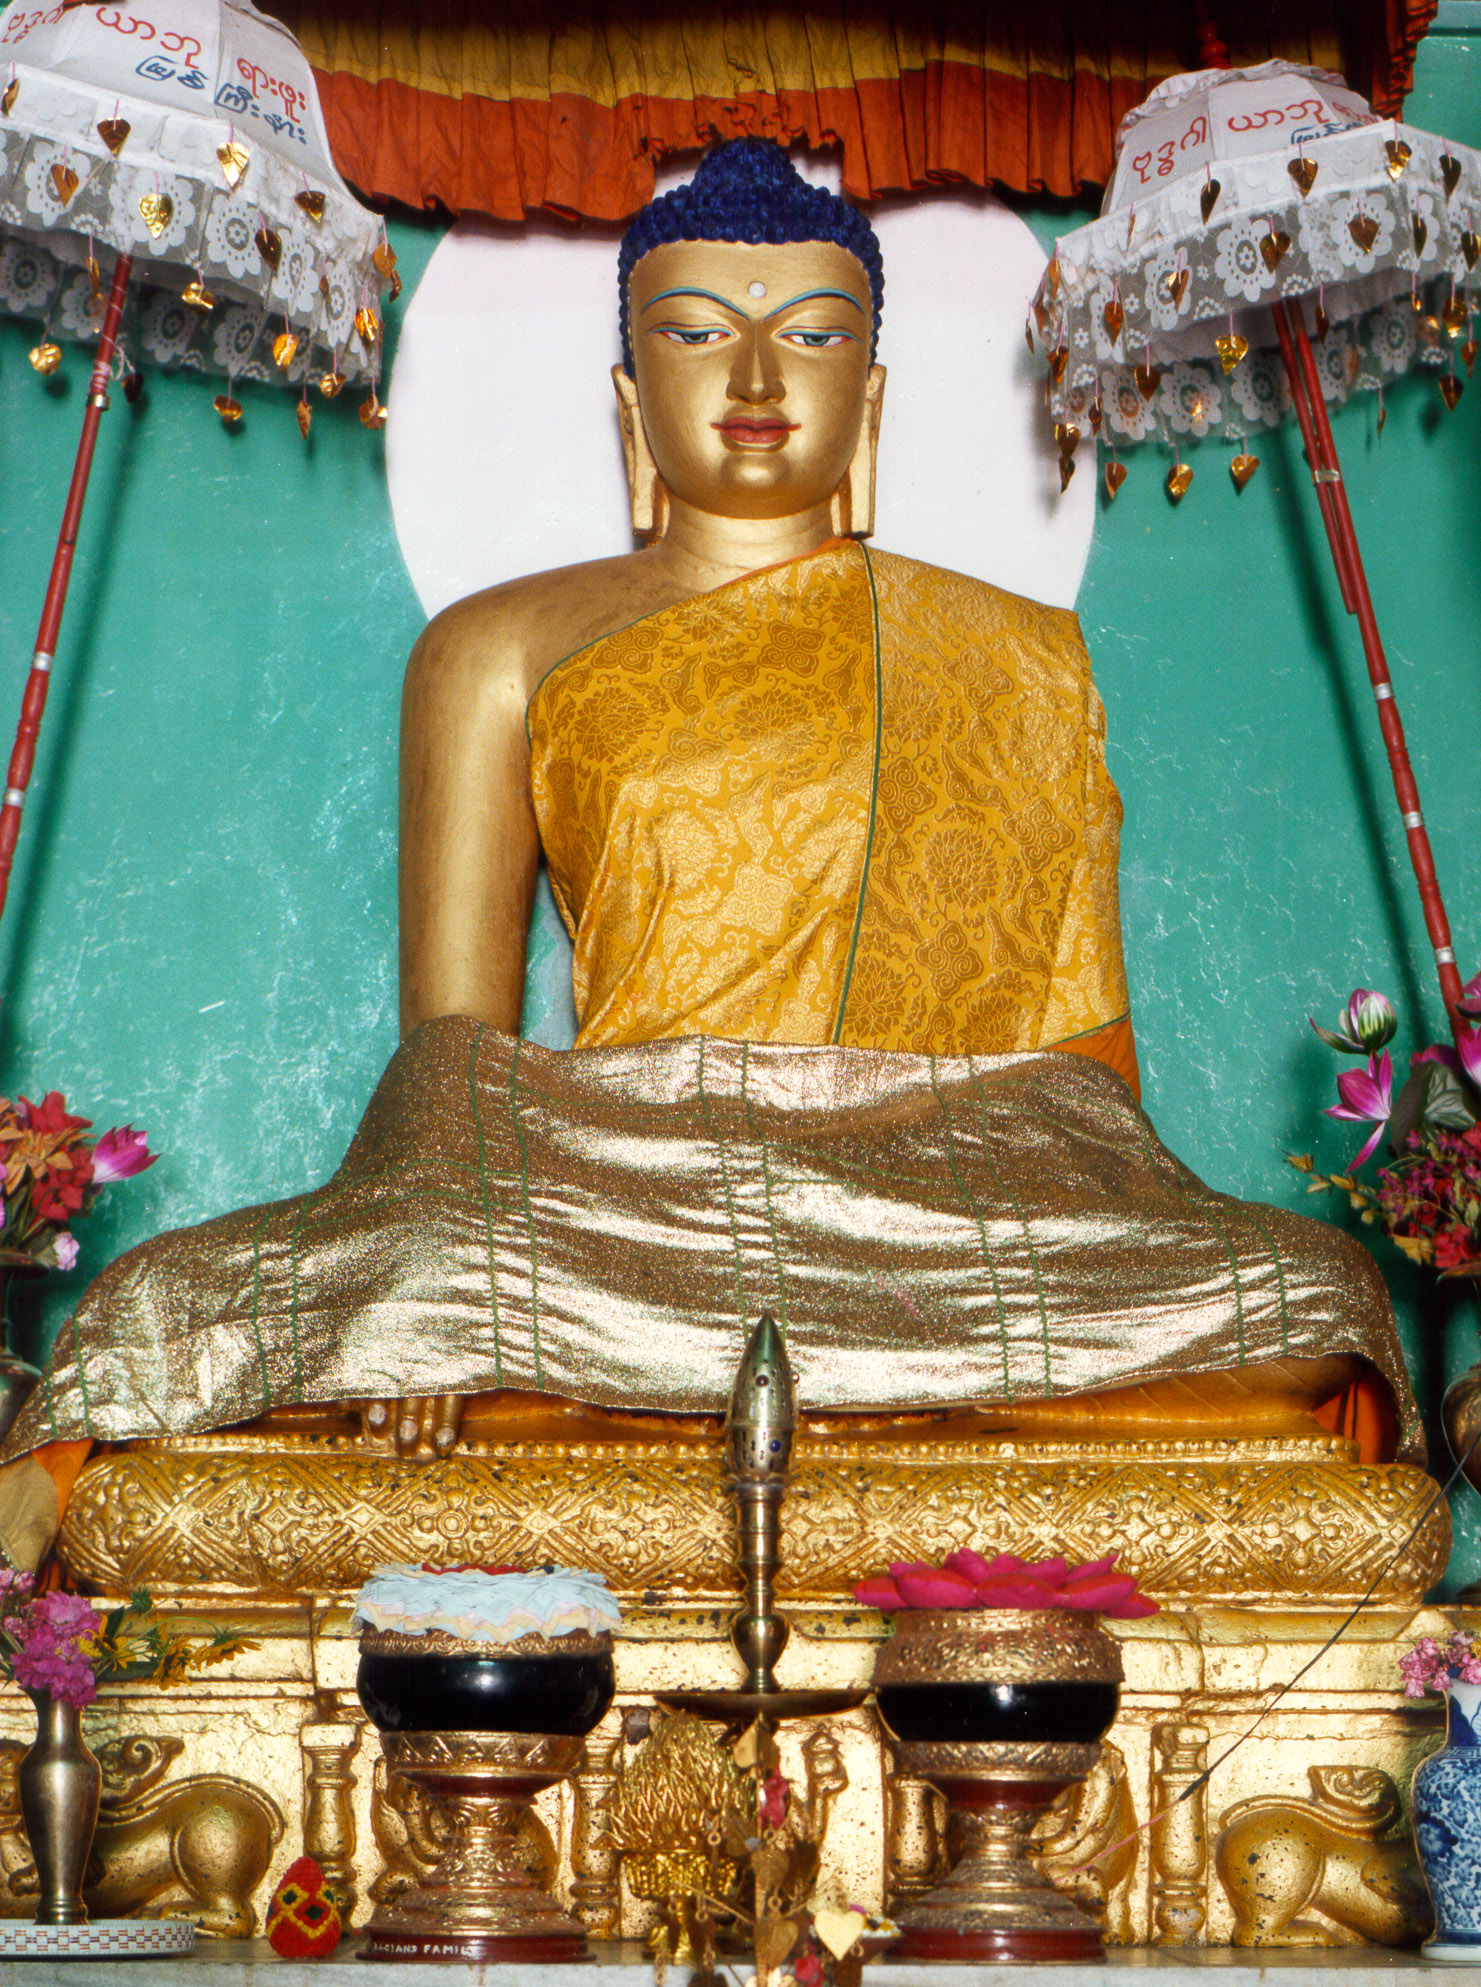 http://upload.wikimedia.org/wikipedia/commons/4/4a/Buddha_Bodhgaya.JPG